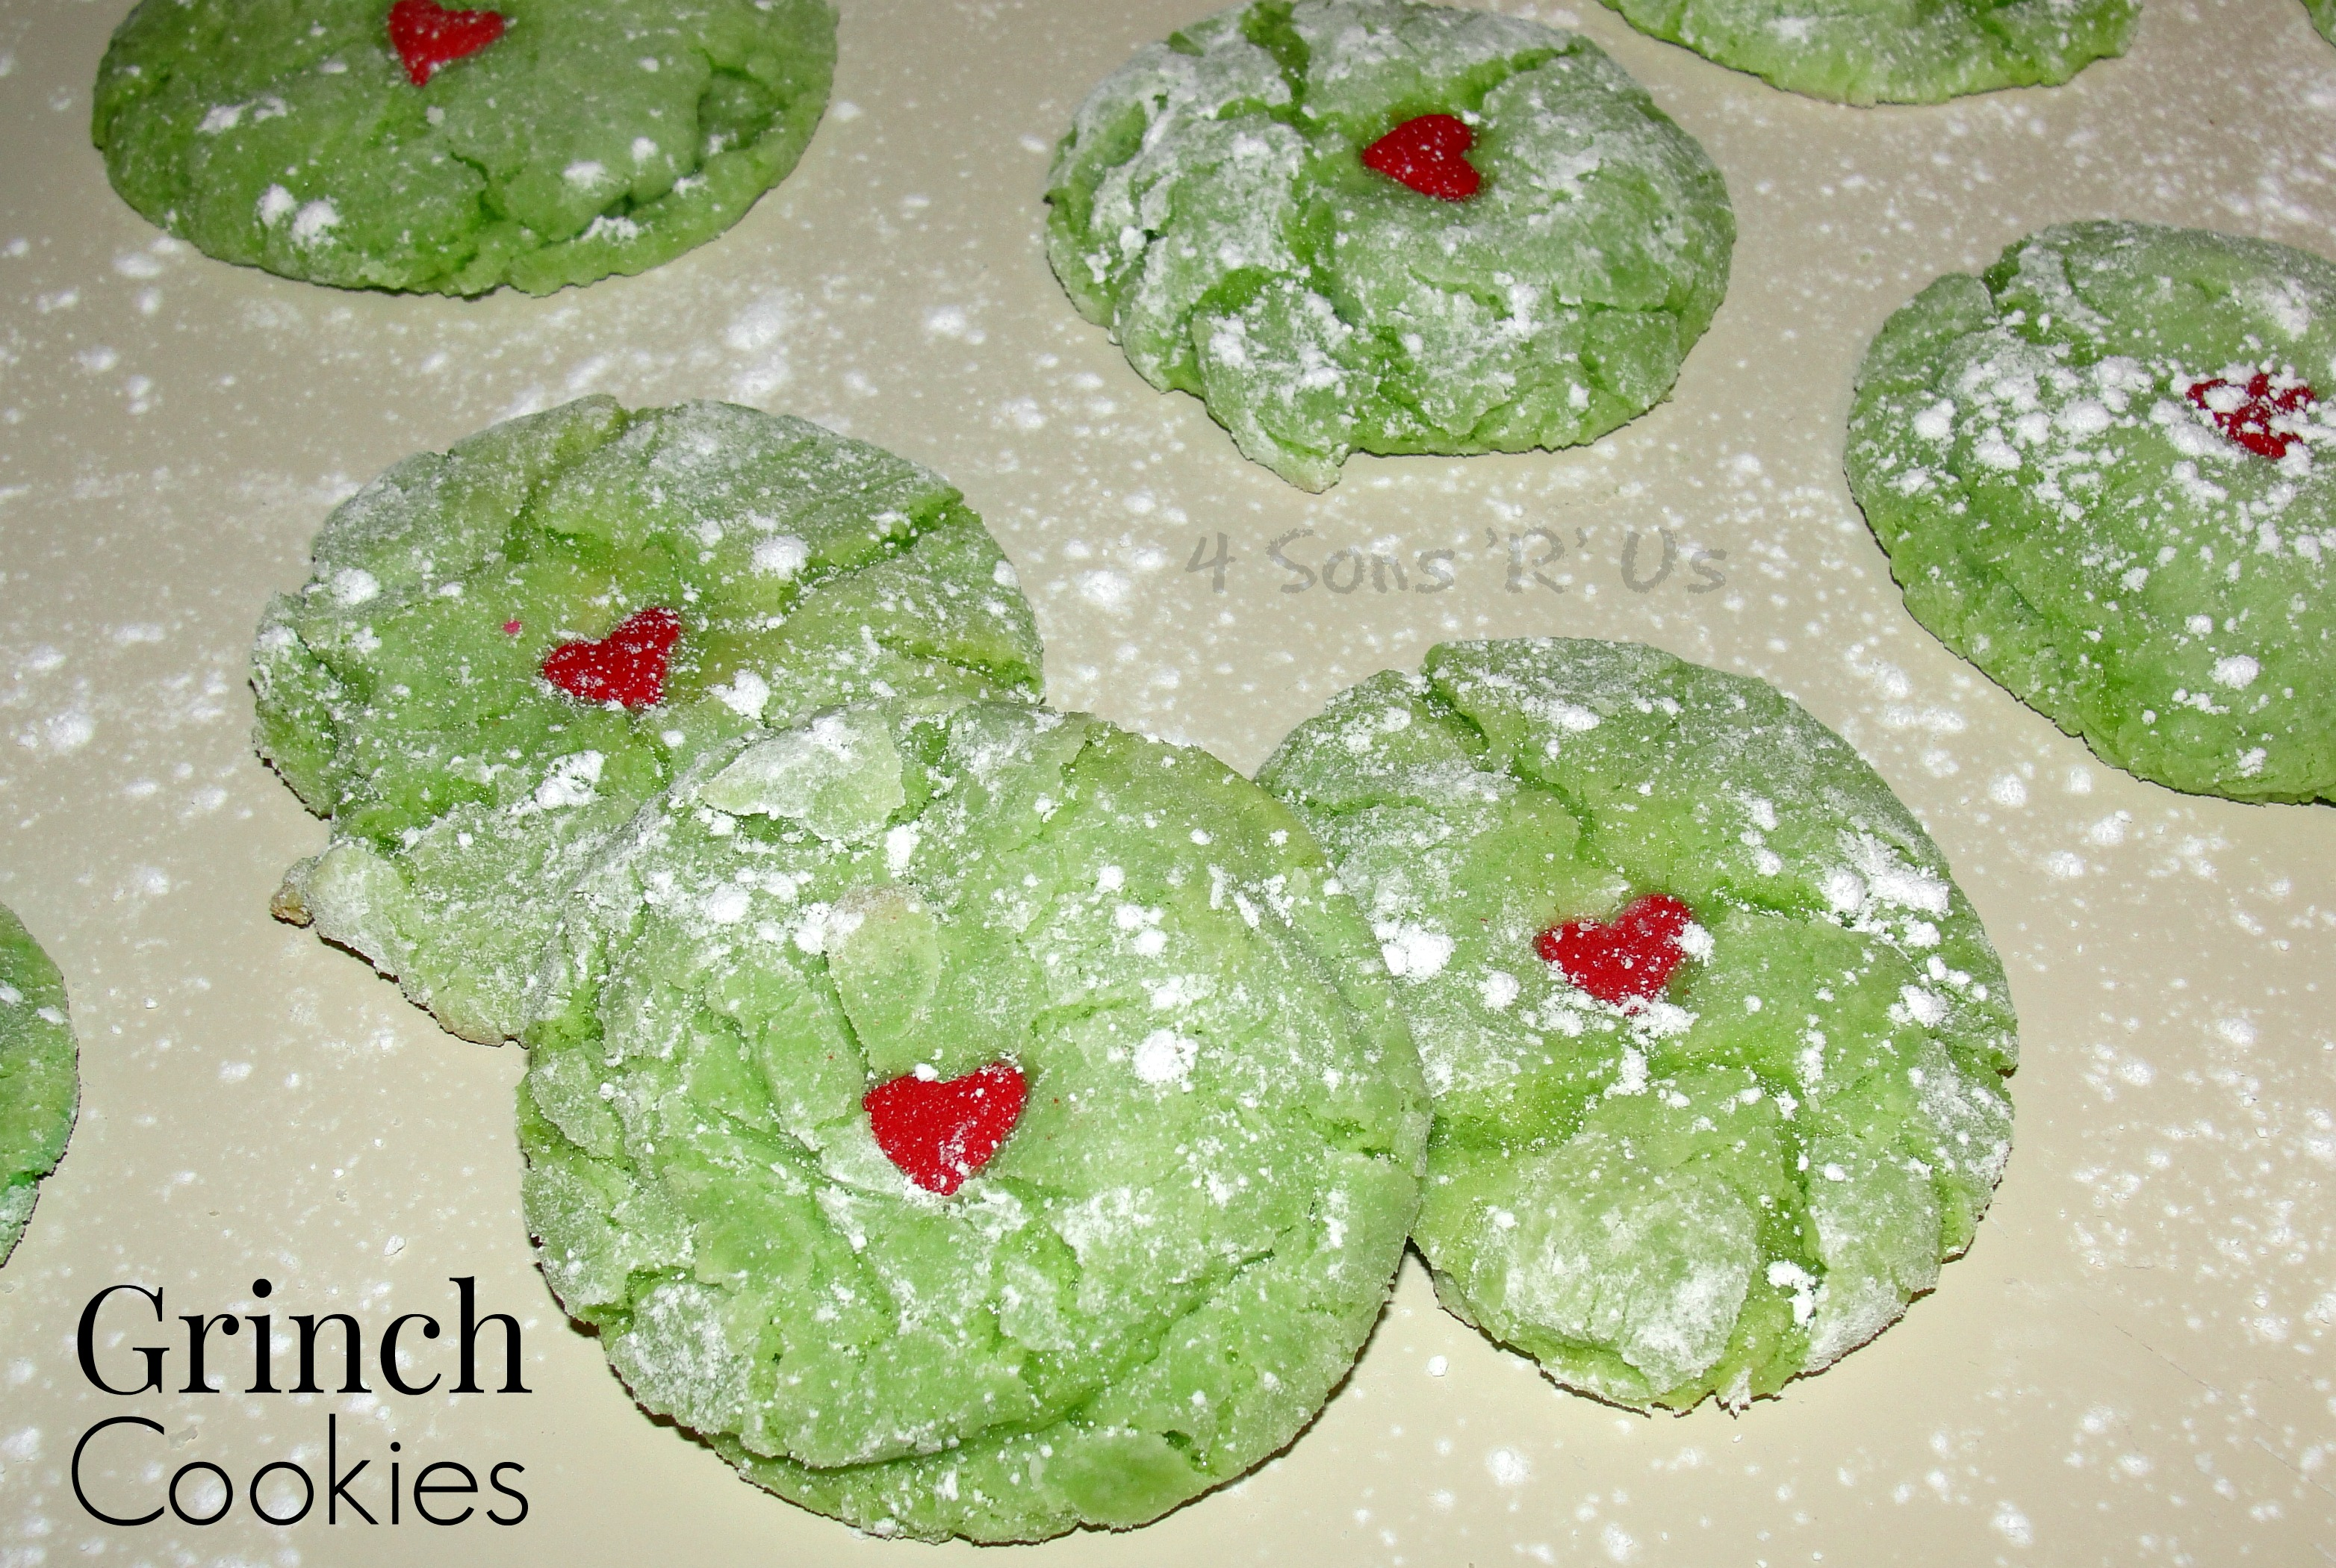 Grinch Cookies 4 Sons R Us